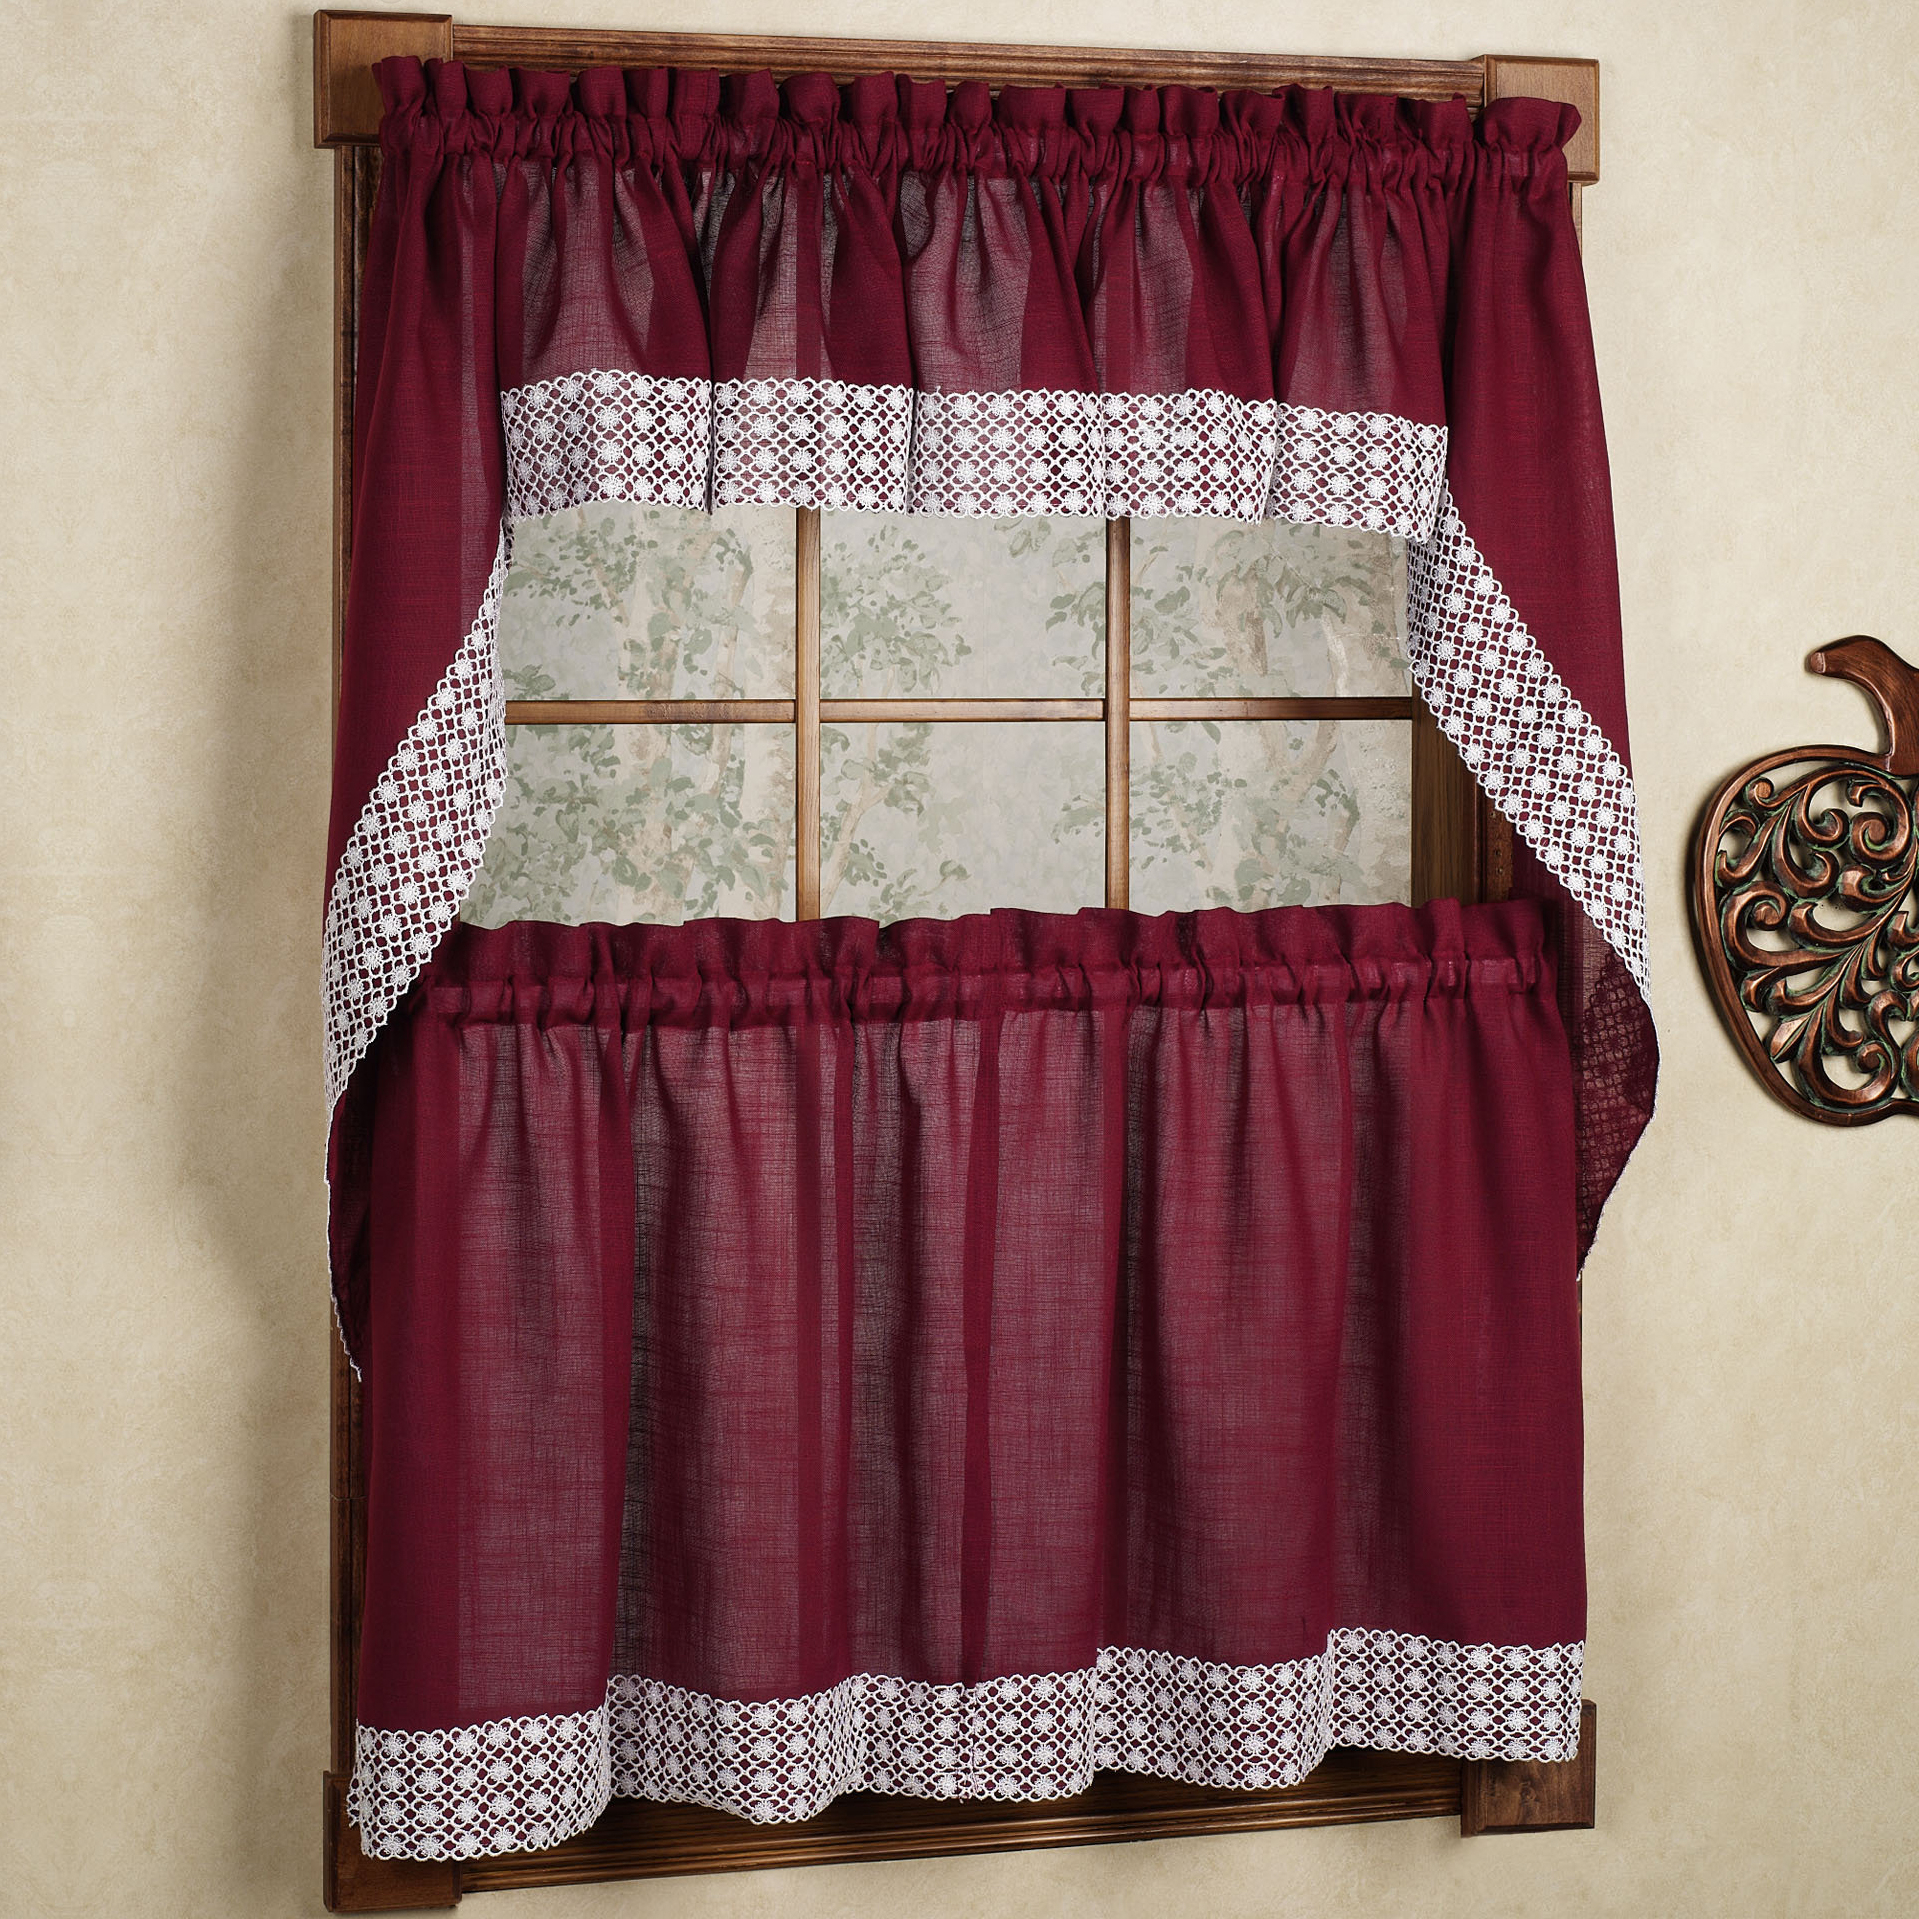 Details About Salem Kitchen Curtain – Burgundy W/white Lace Trim – Lorraine Home Fashions Intended For French Vanilla Country Style Curtain Parts With White Daisy Lace Accent (View 6 of 20)